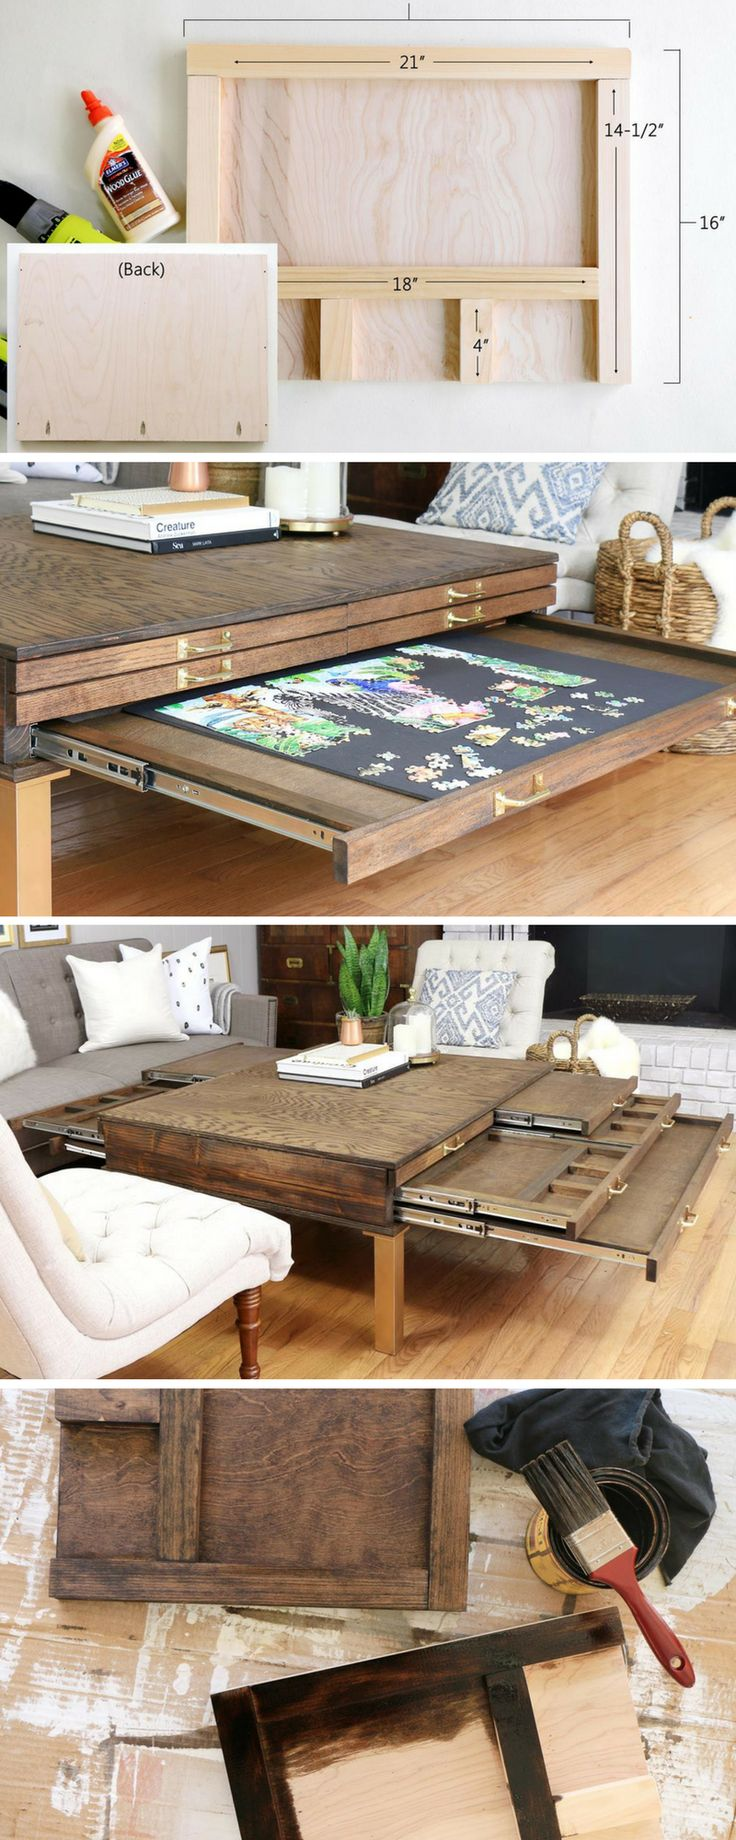 How to Build a DIY Coffee Table